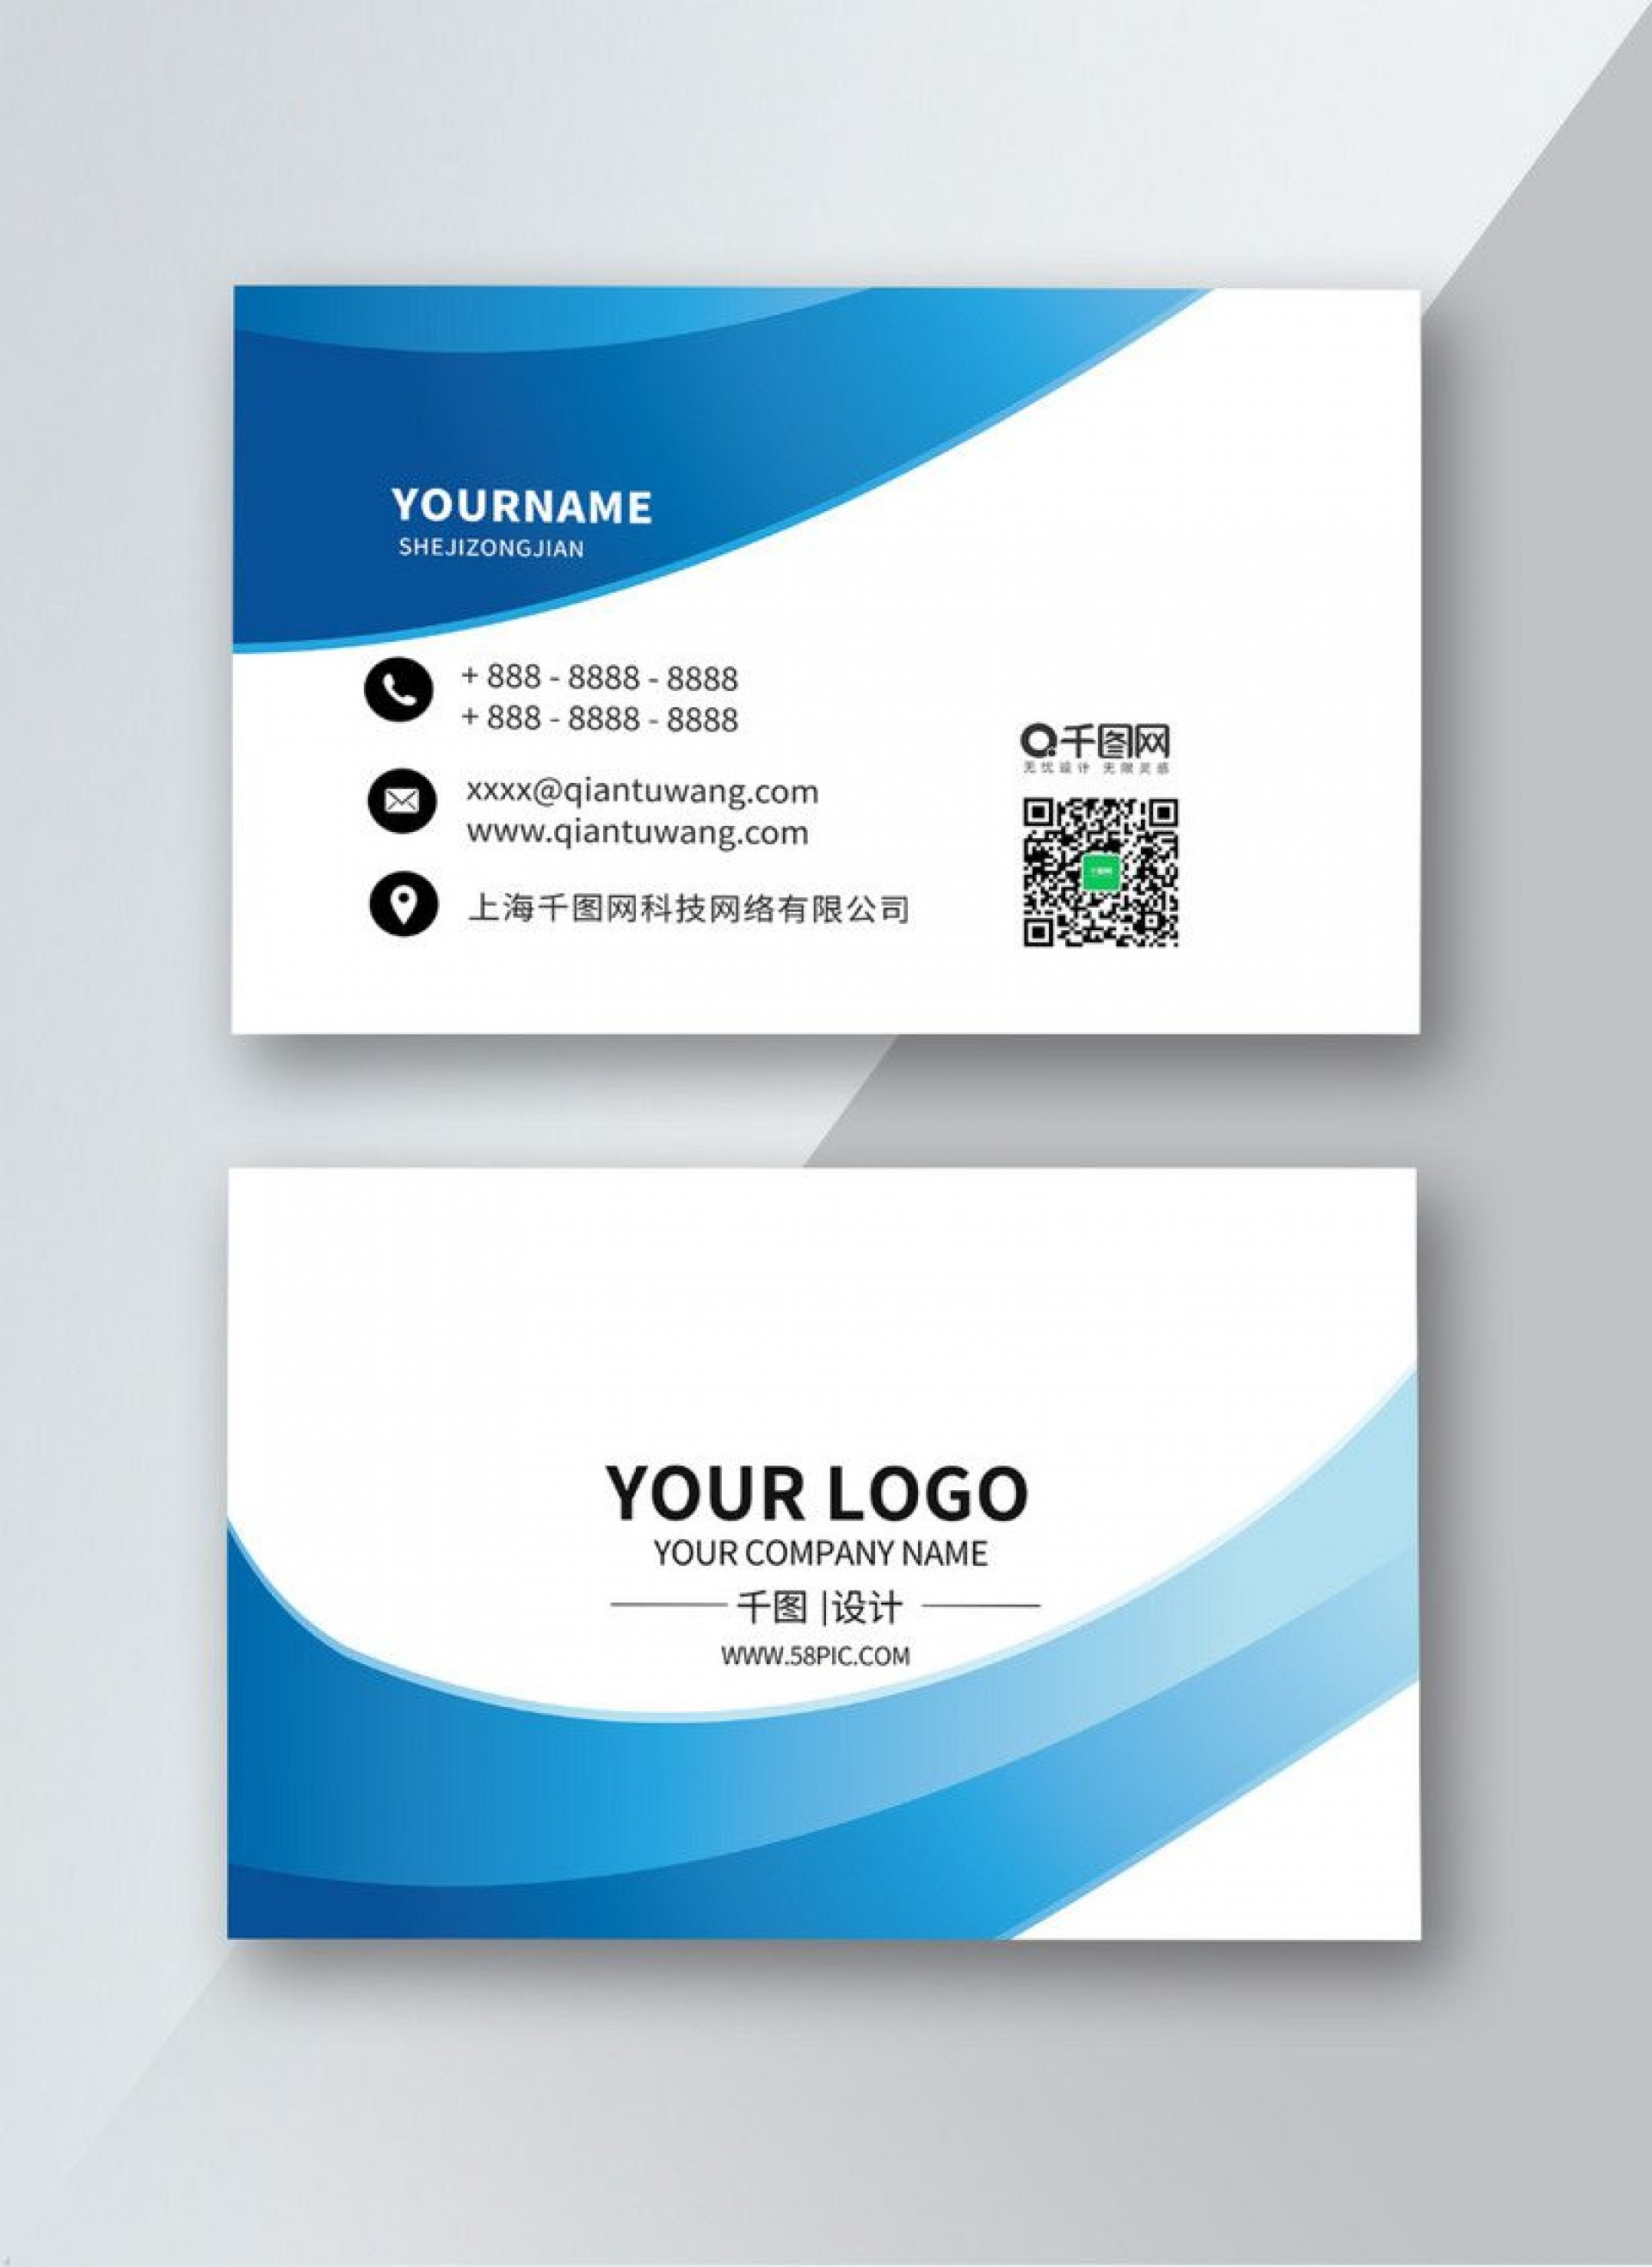 003 Sensational Free Download Busines Card Template High Resolution  Microsoft Word Photoshop Psd Double Sided1920